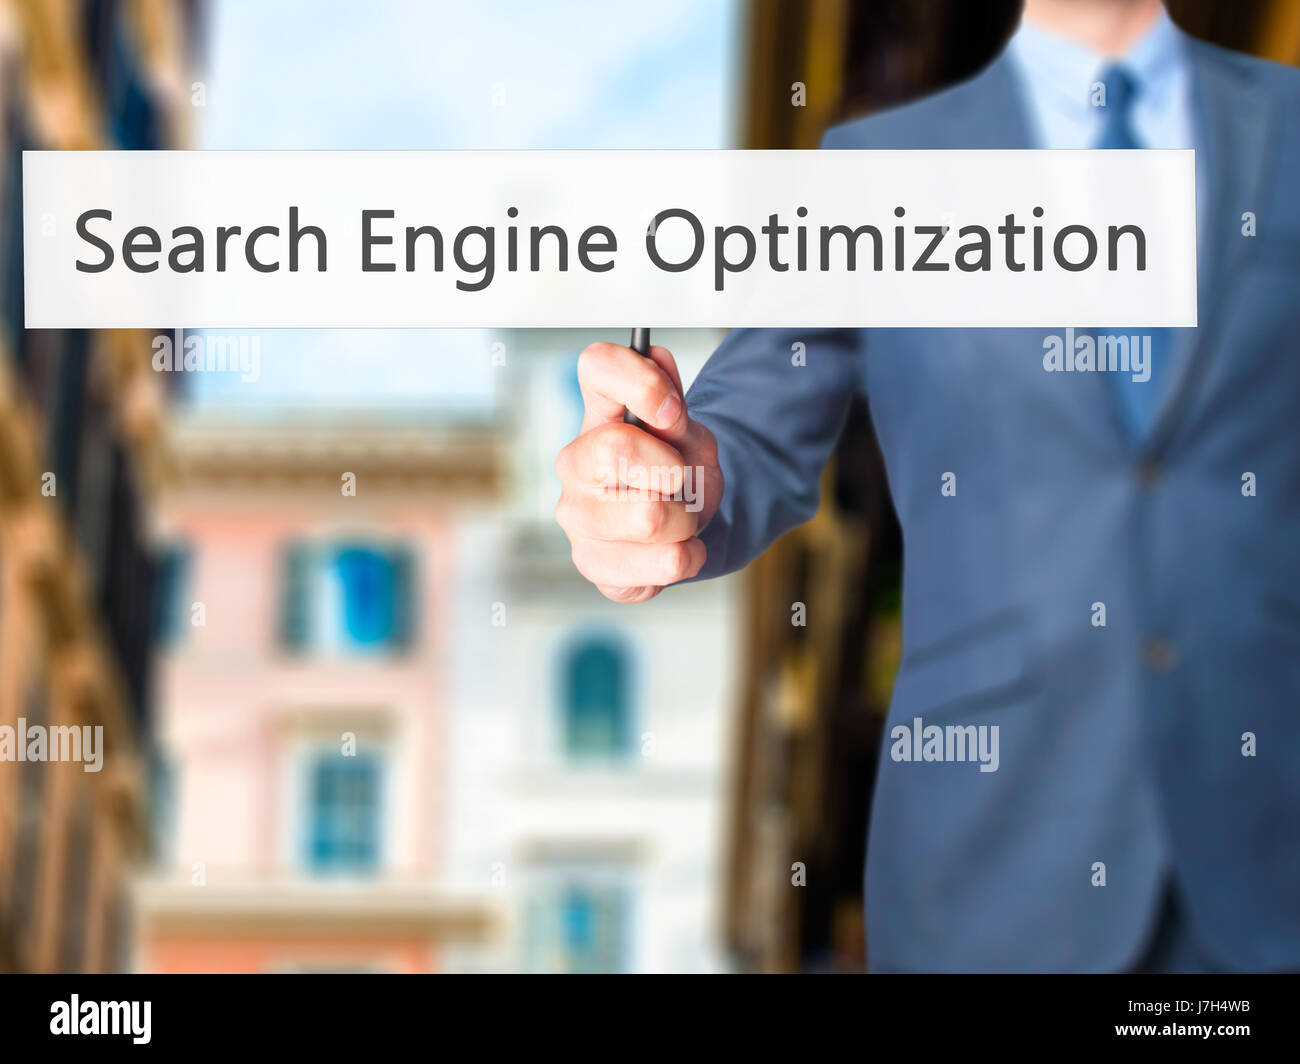 Search Engine Optimization - Business man showing sign. Business, technology, internet concept. Stock Photo Stock Photo